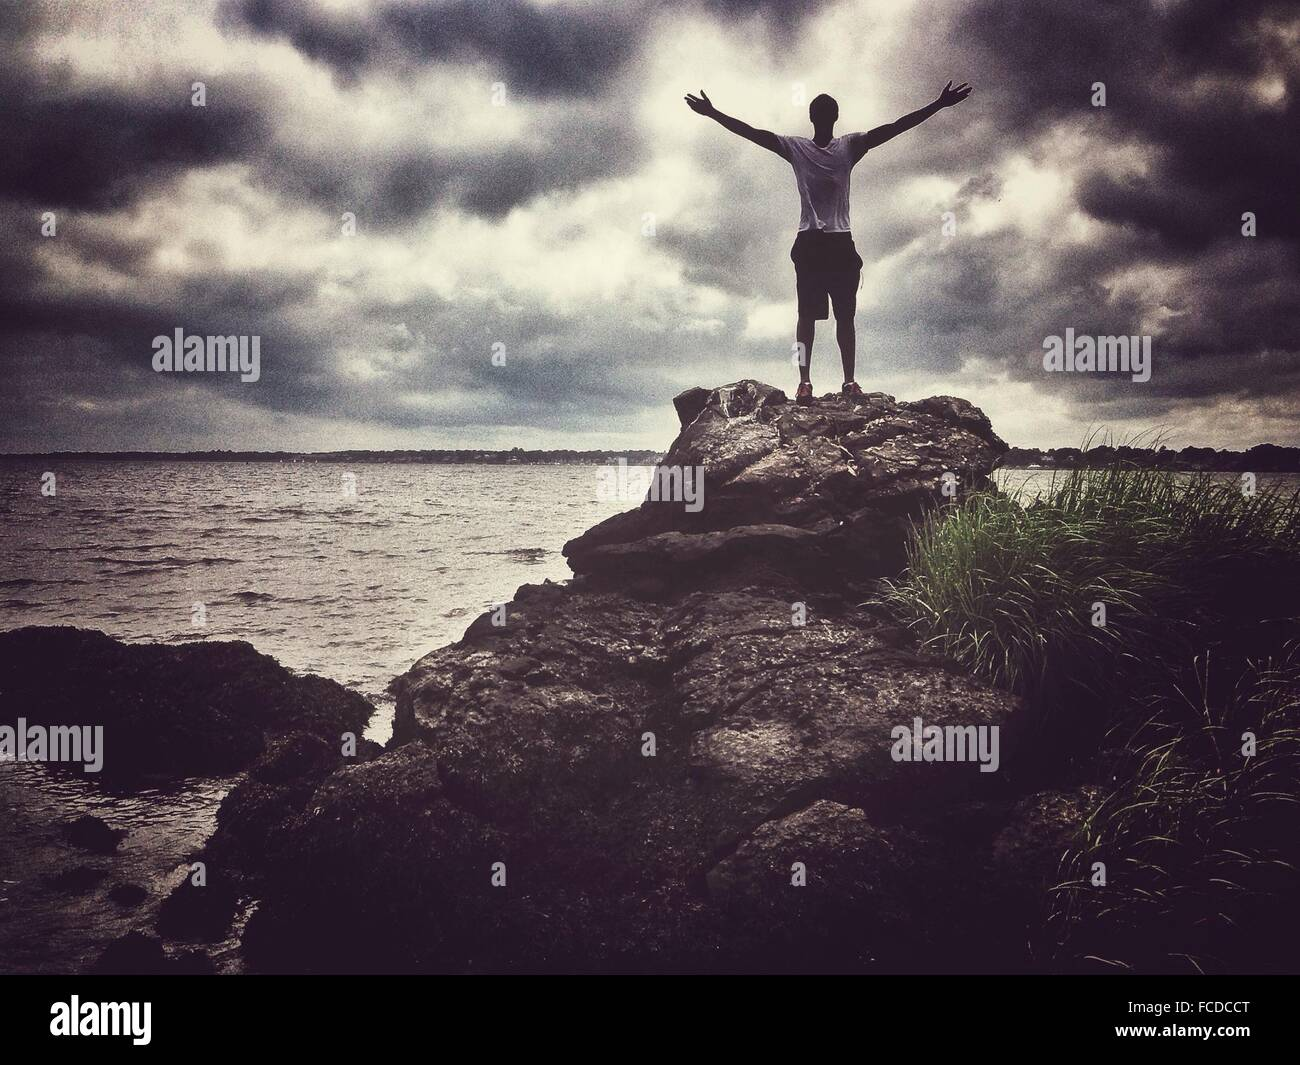 Man With Arms Outstretched Standing On Rocks Against Clouds Sky - Stock Image